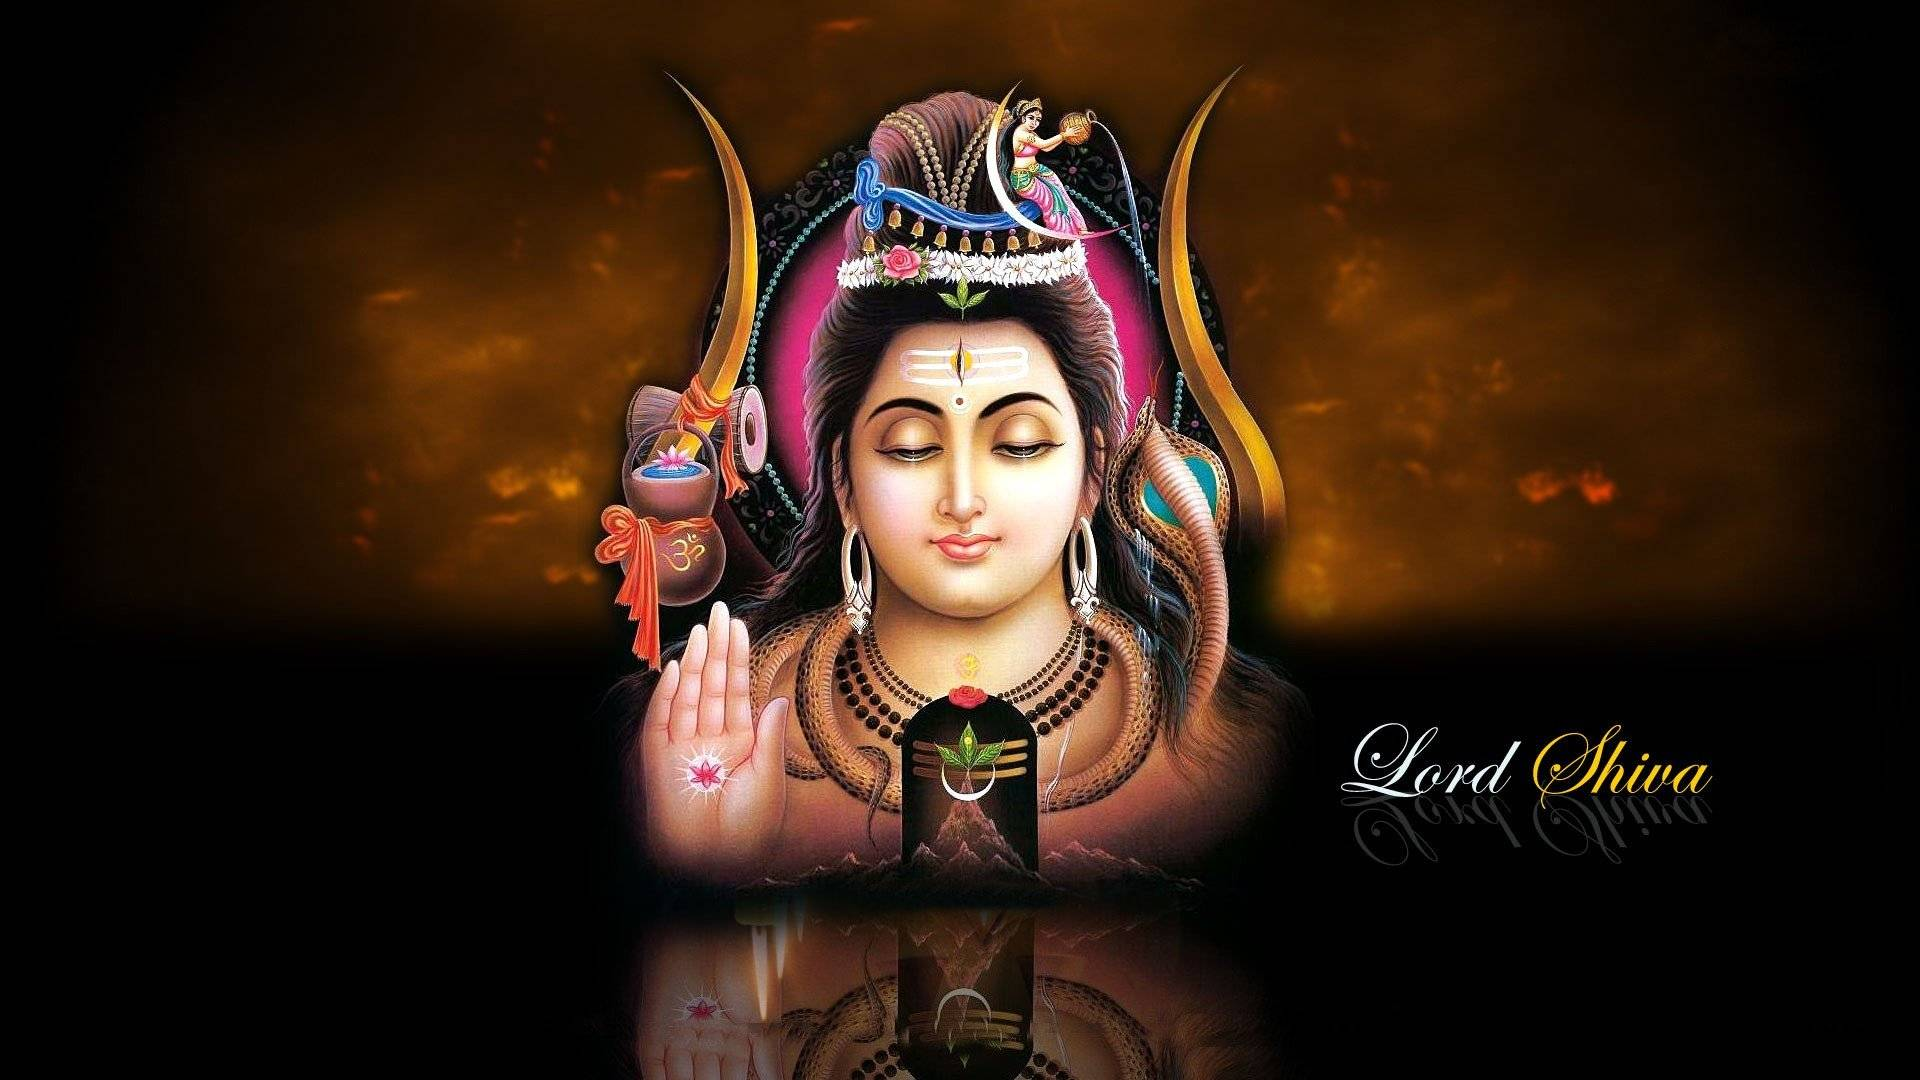 Lord Shiva Wallpapers - Wallpaper Cave